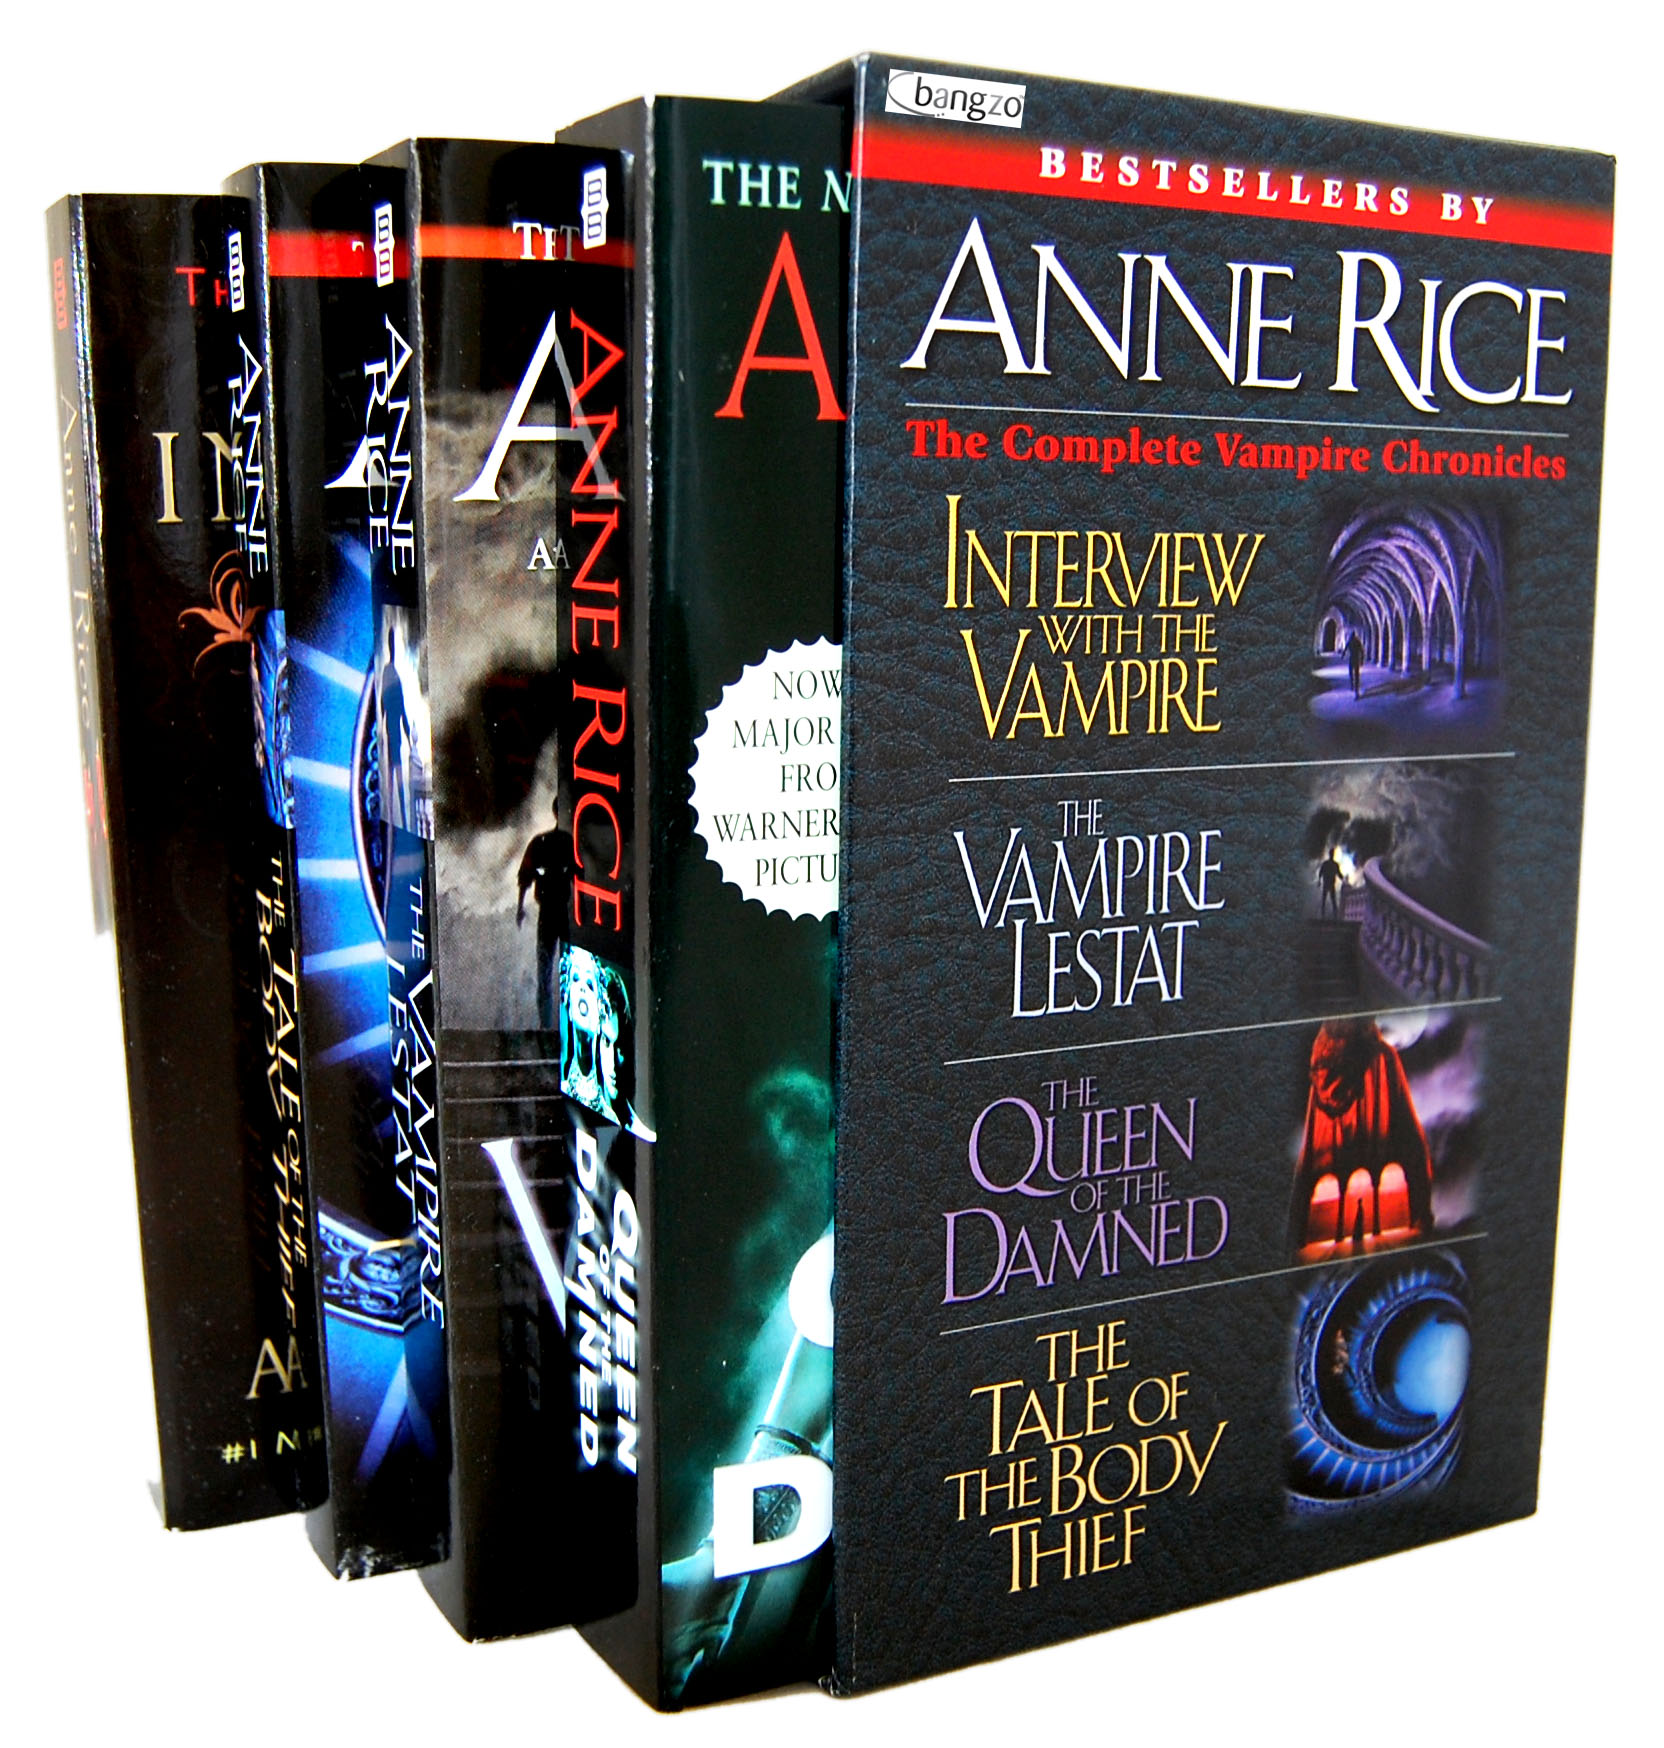 Vampire Book Cover Ideas : The official anne rice site party invitations ideas